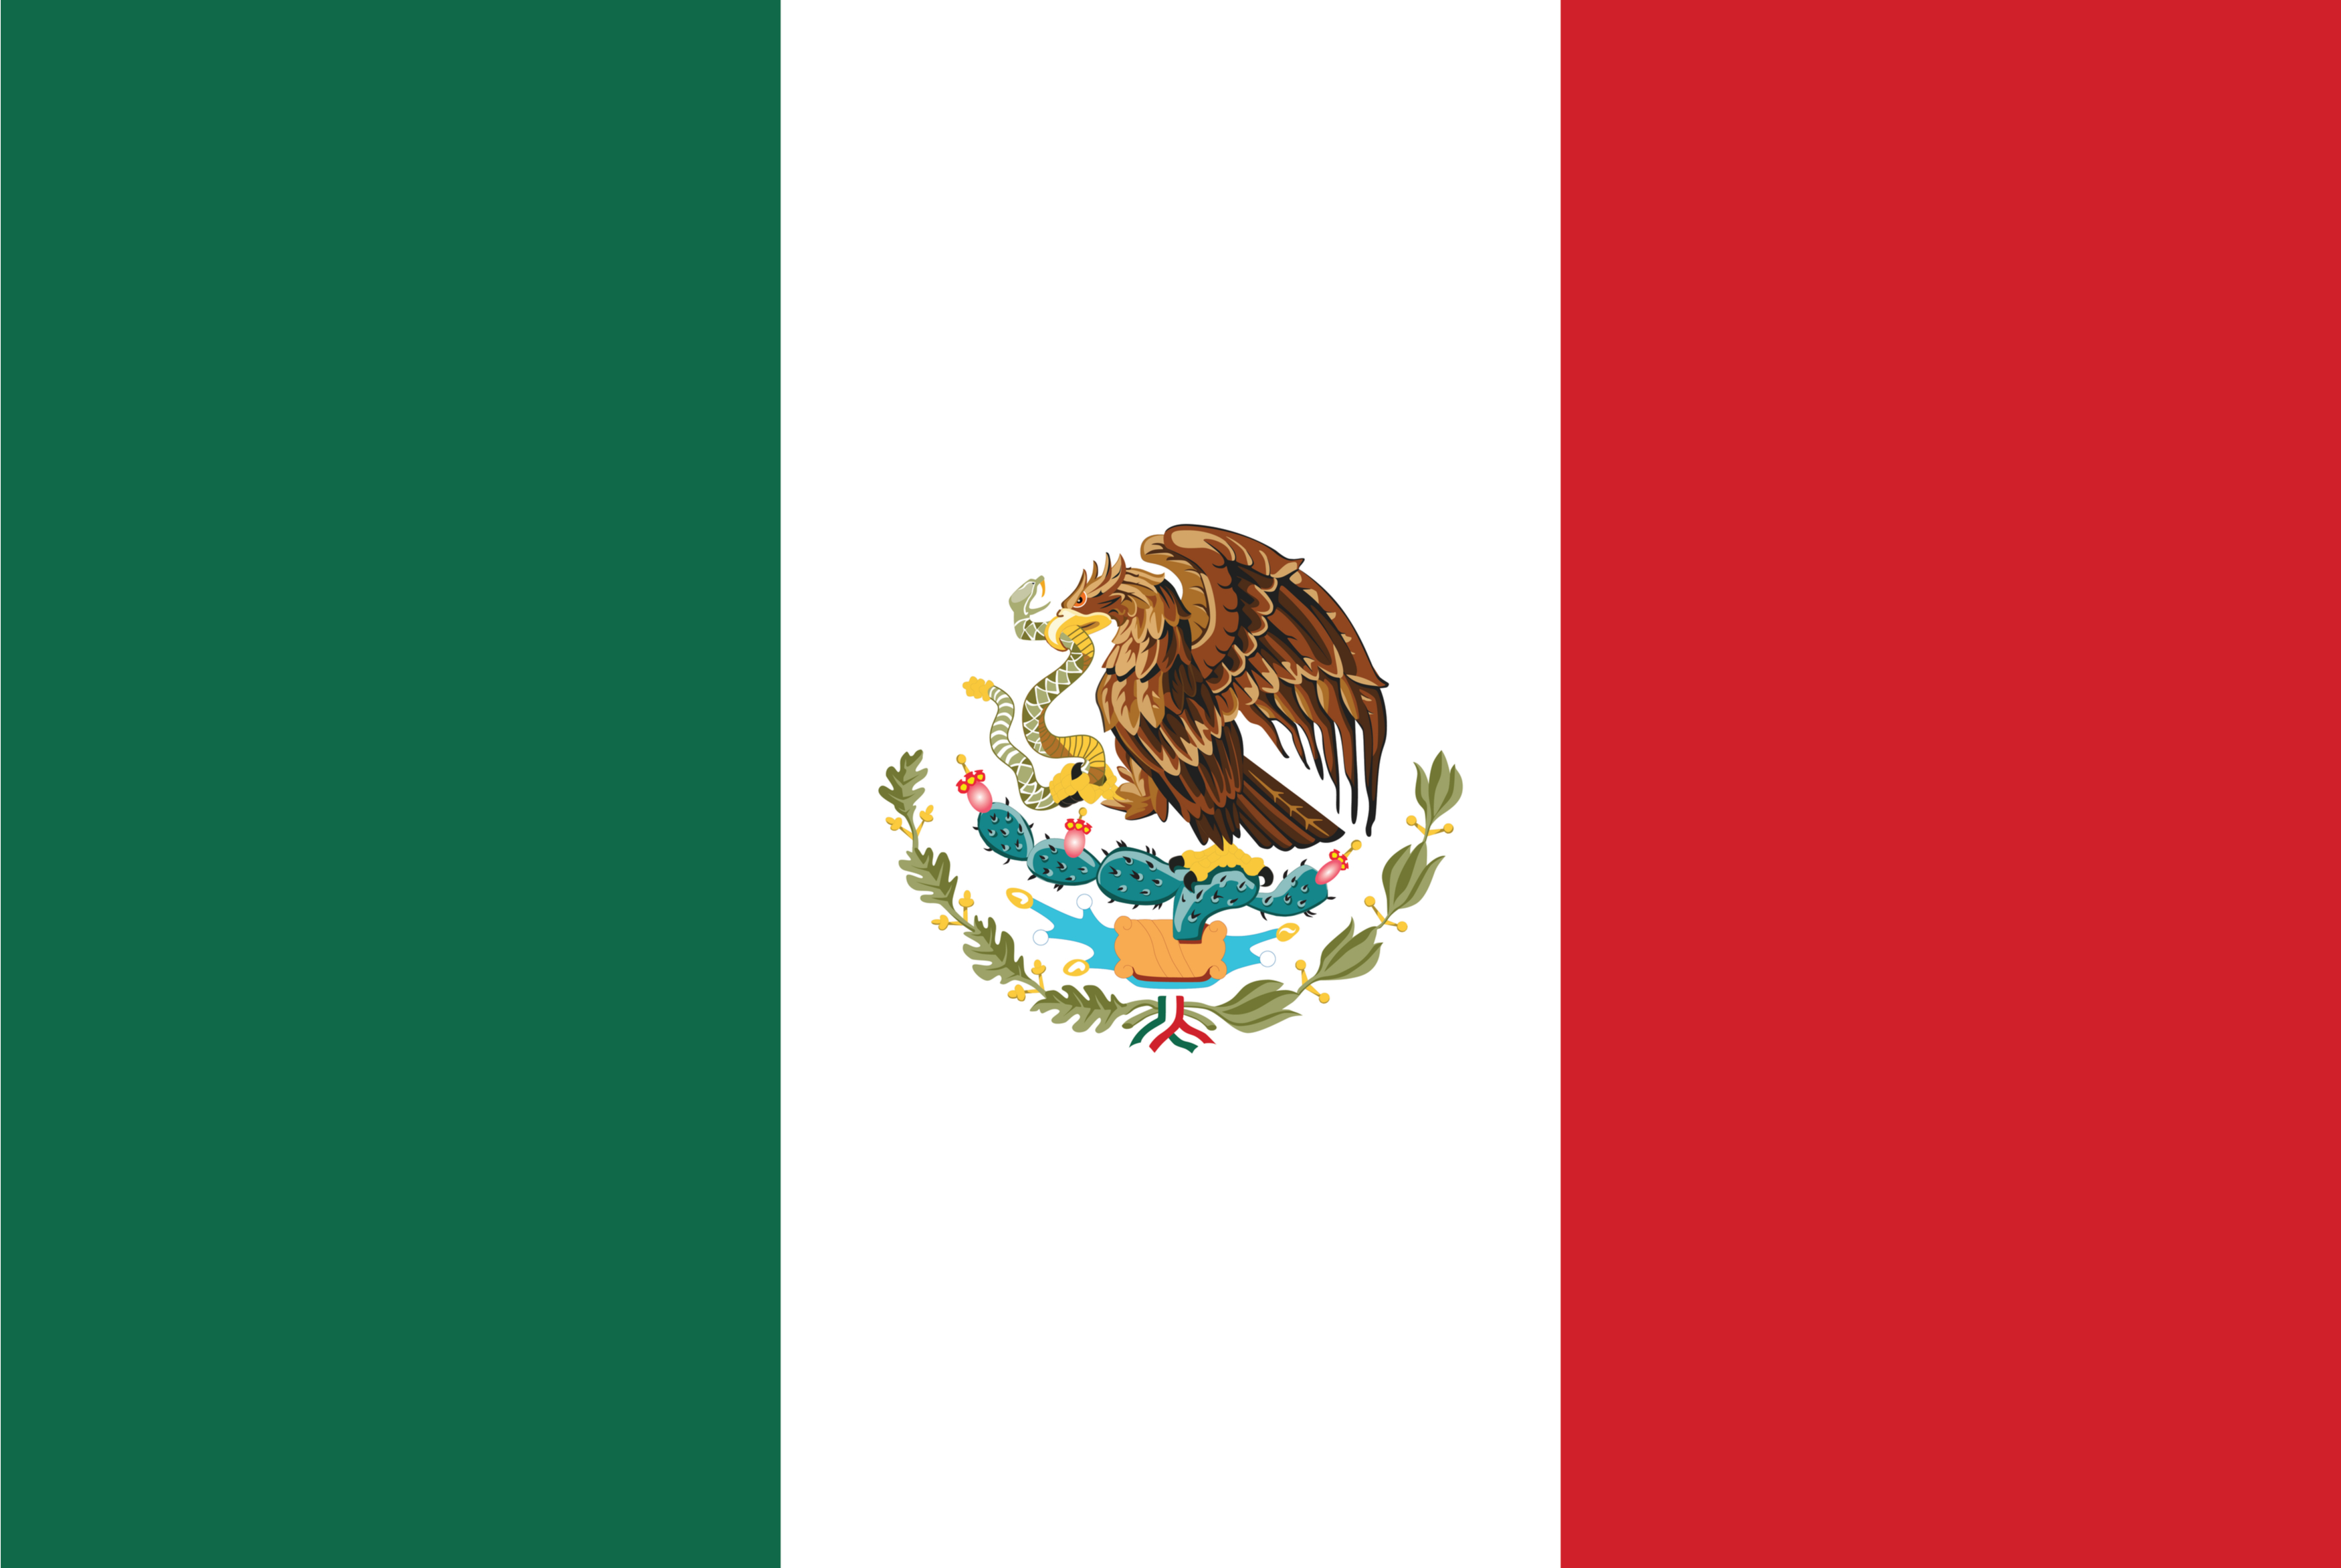 The tricolored flag of Mexico